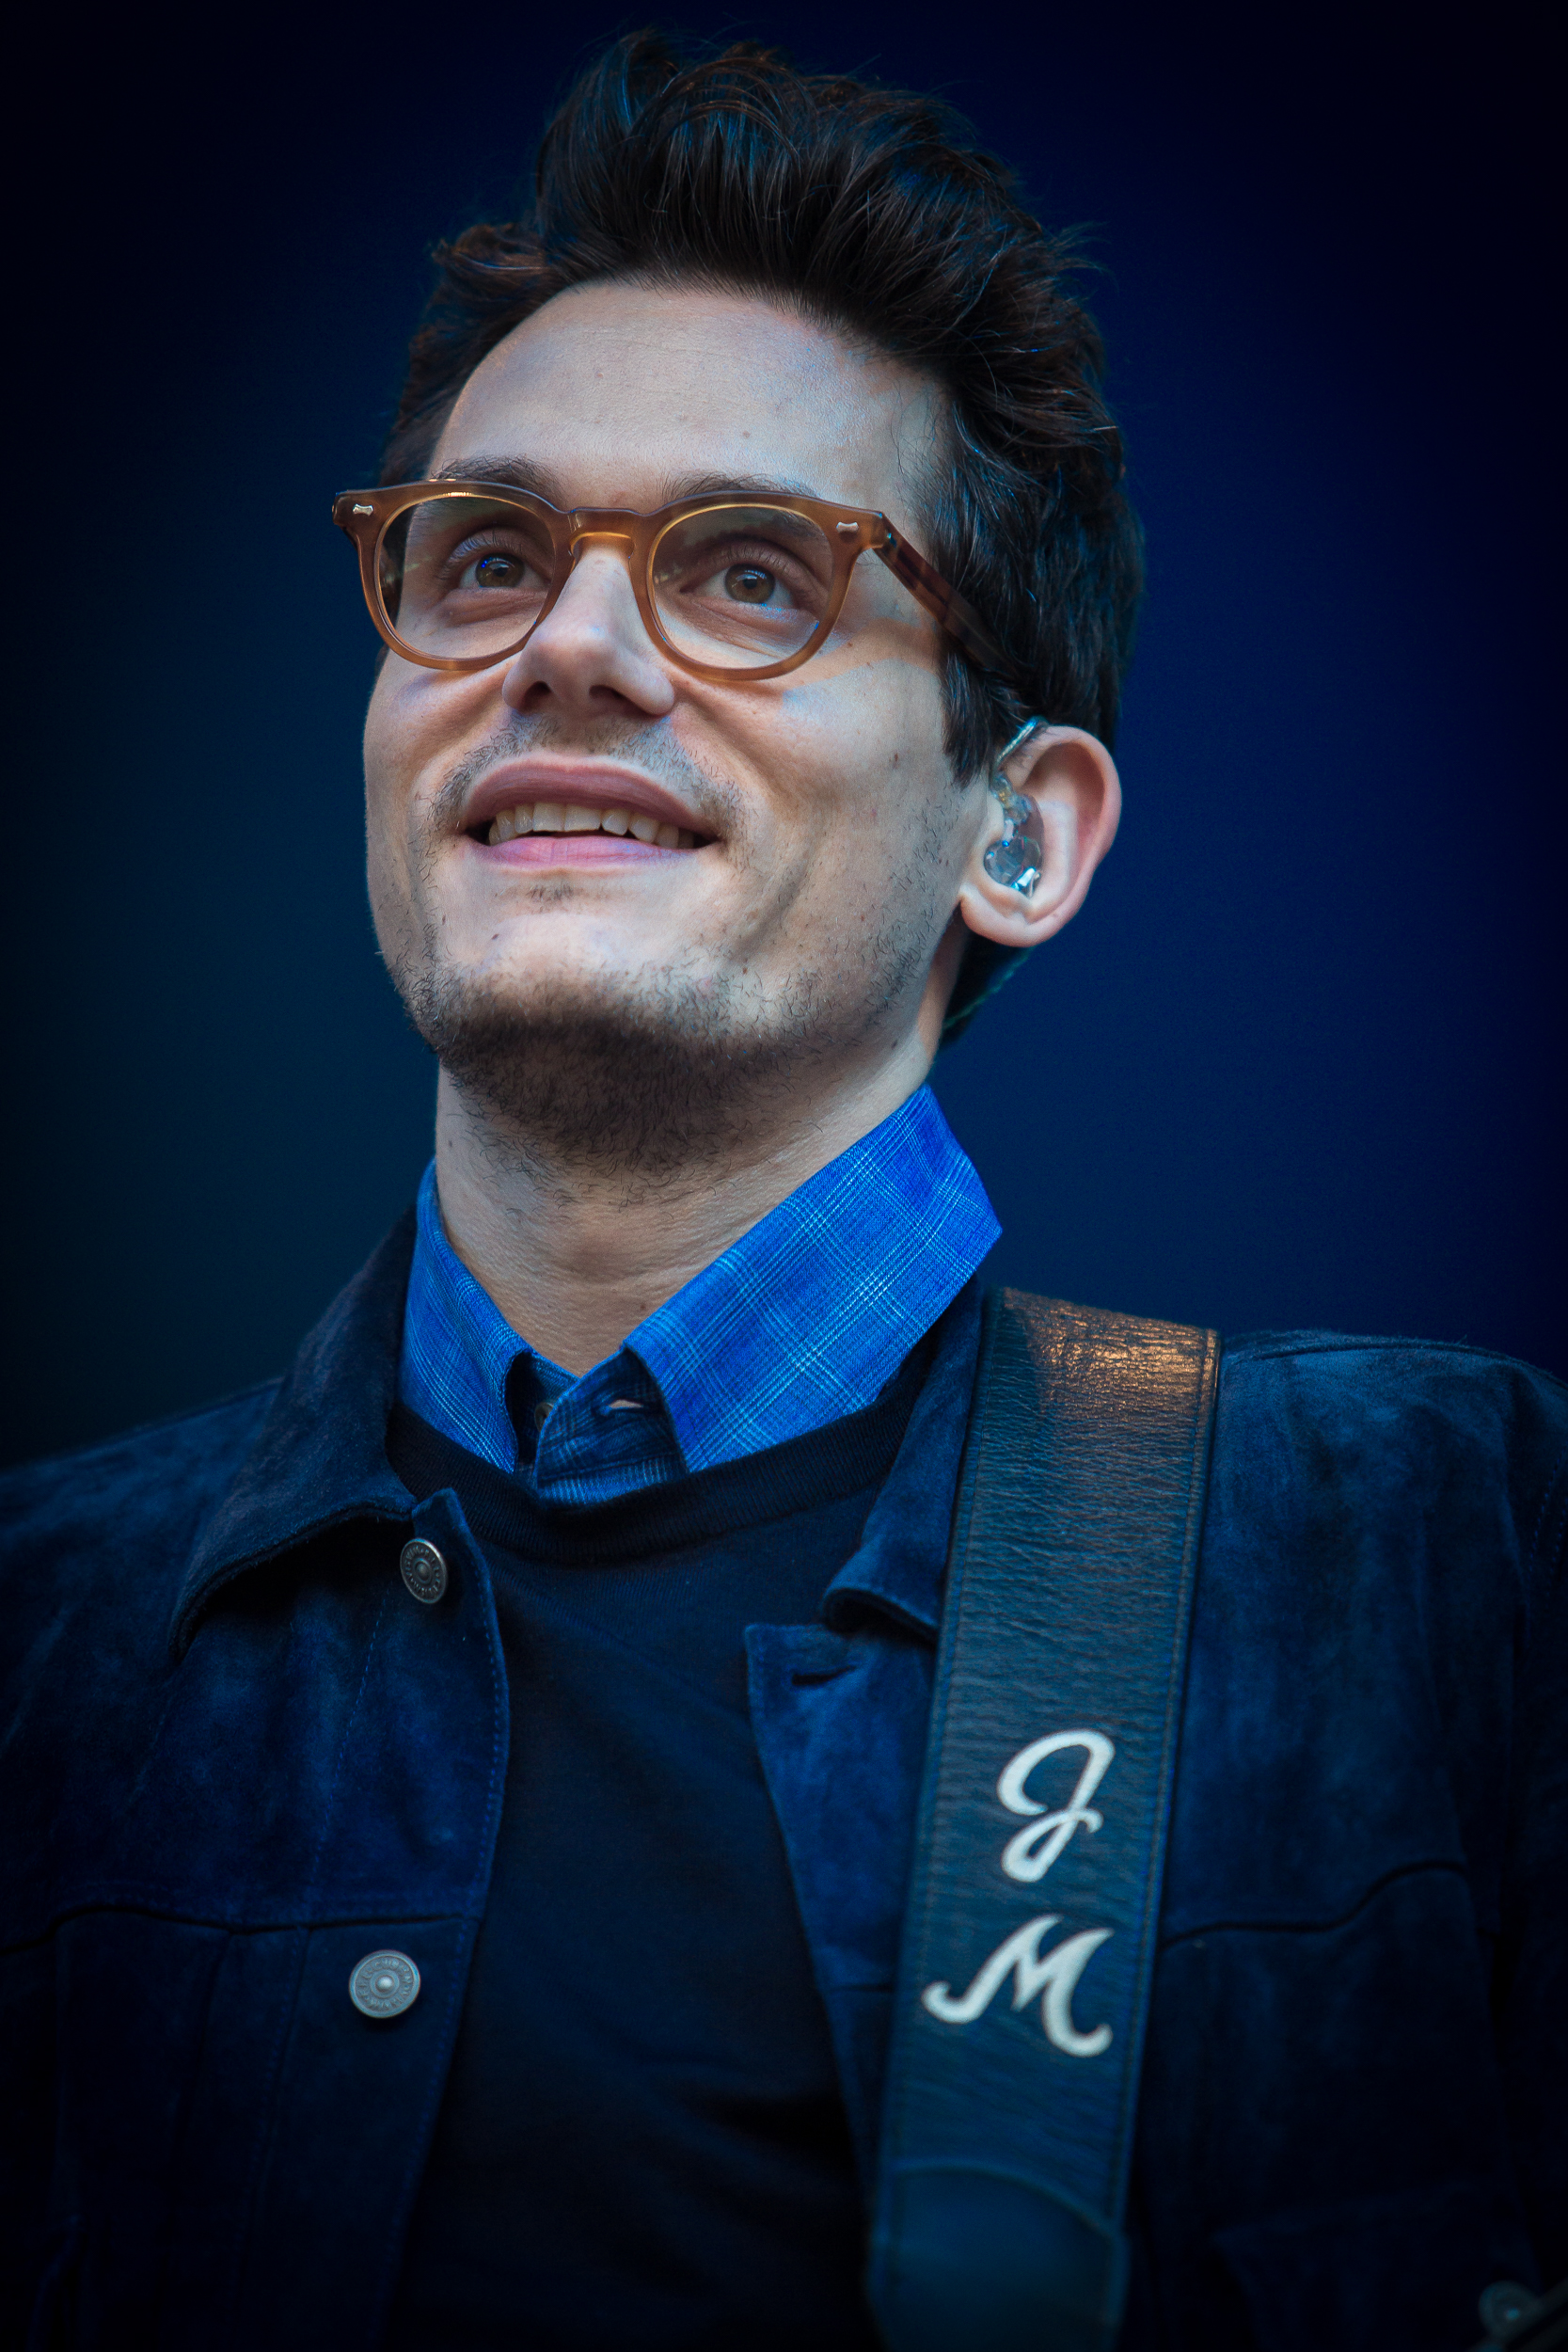 John Mayer live at Bergenfest 2014, Bergen.